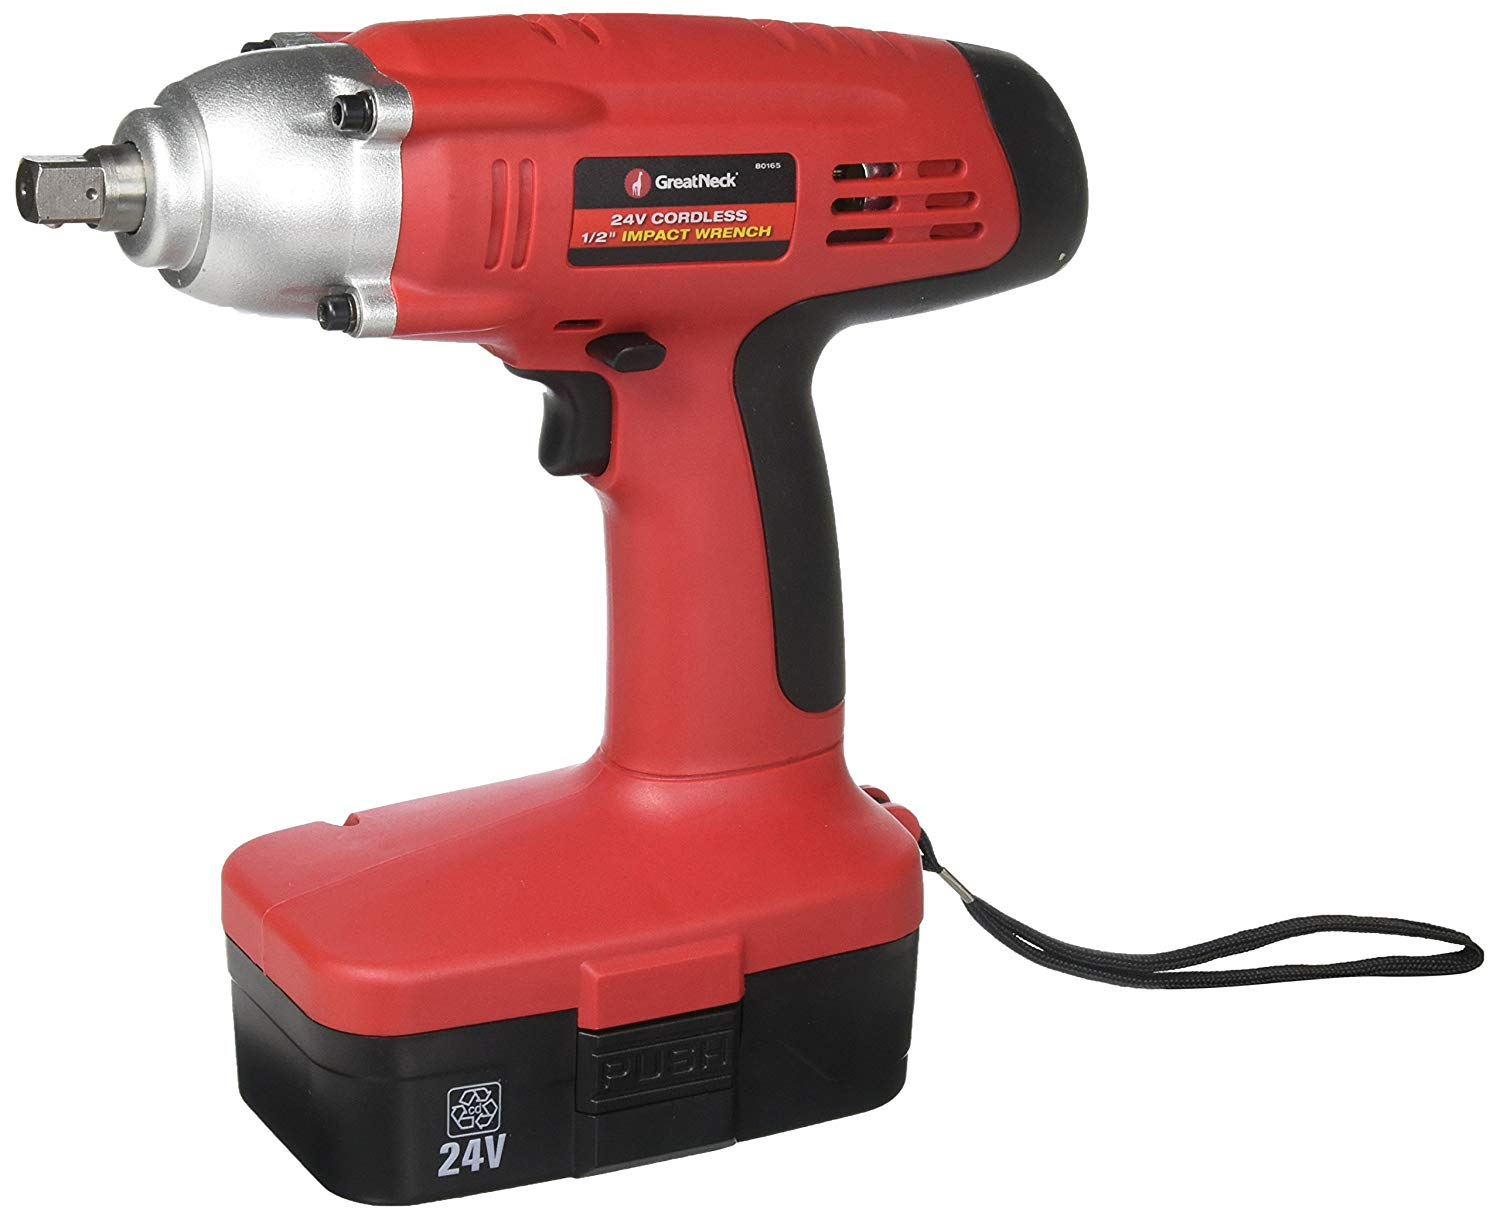 Great Neck 24v Cordless Impact Wrench Review